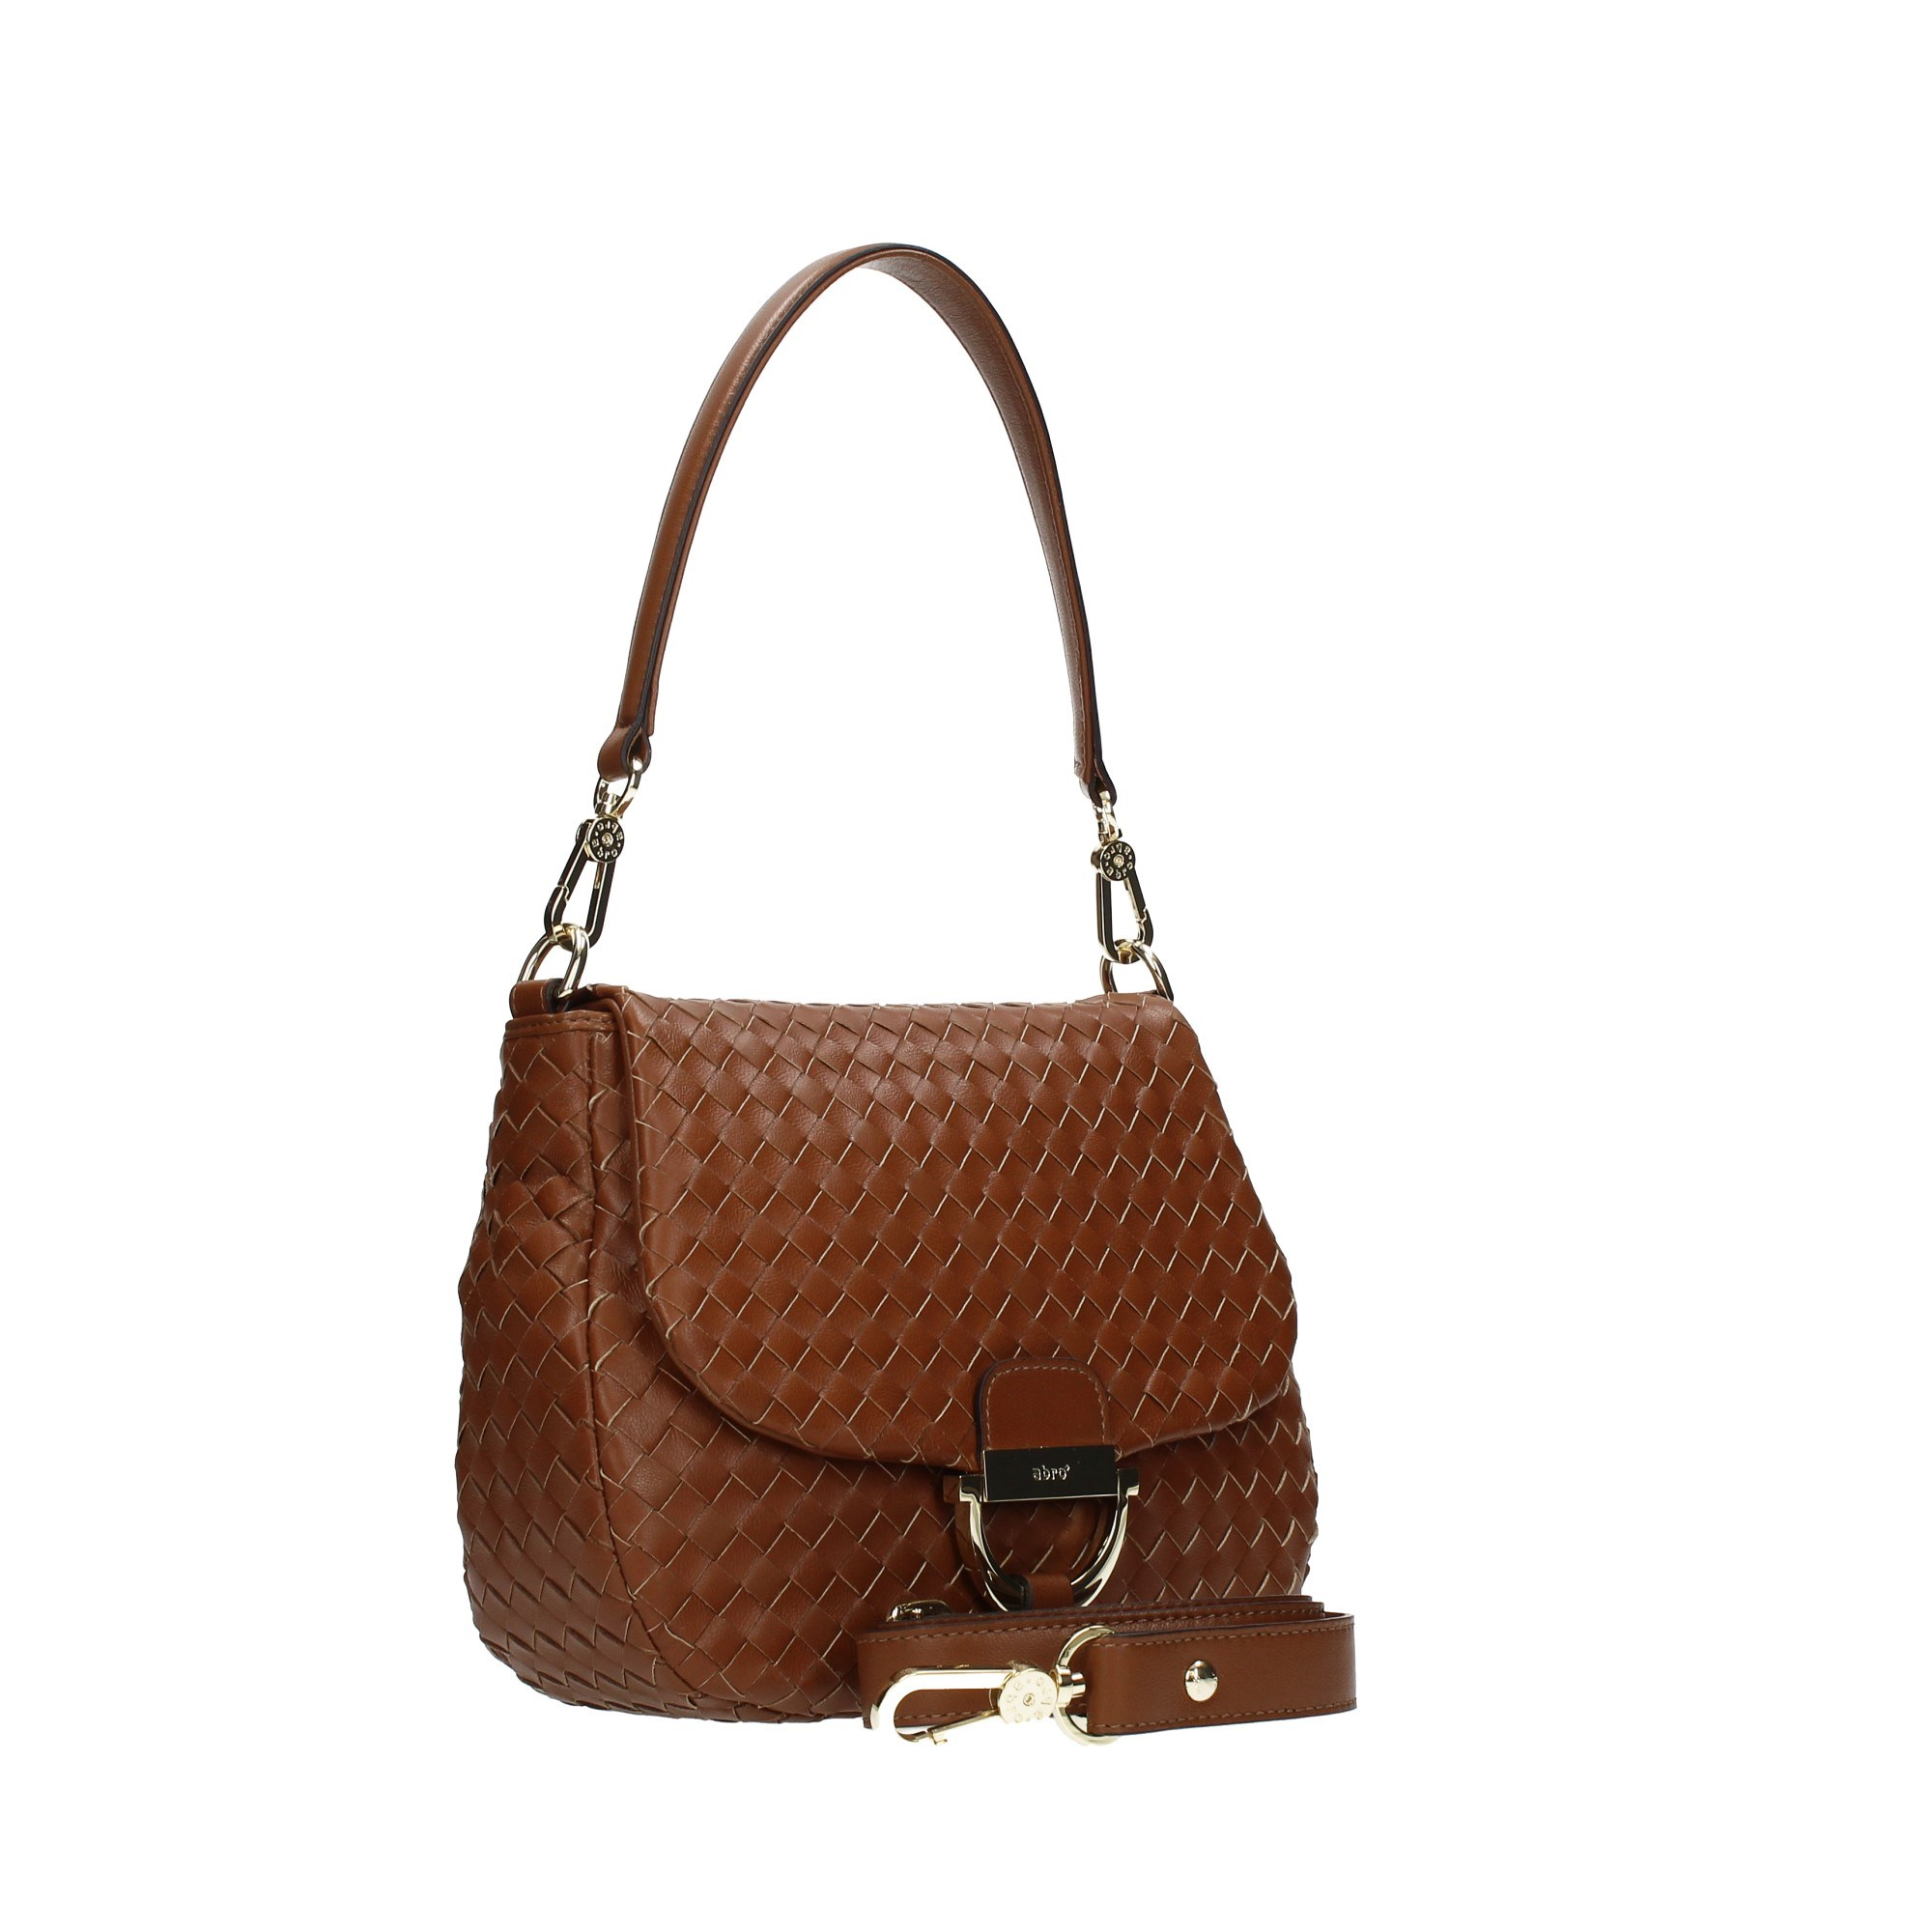 Abro Accessories Women Shoulder Bags Leather 29379-36